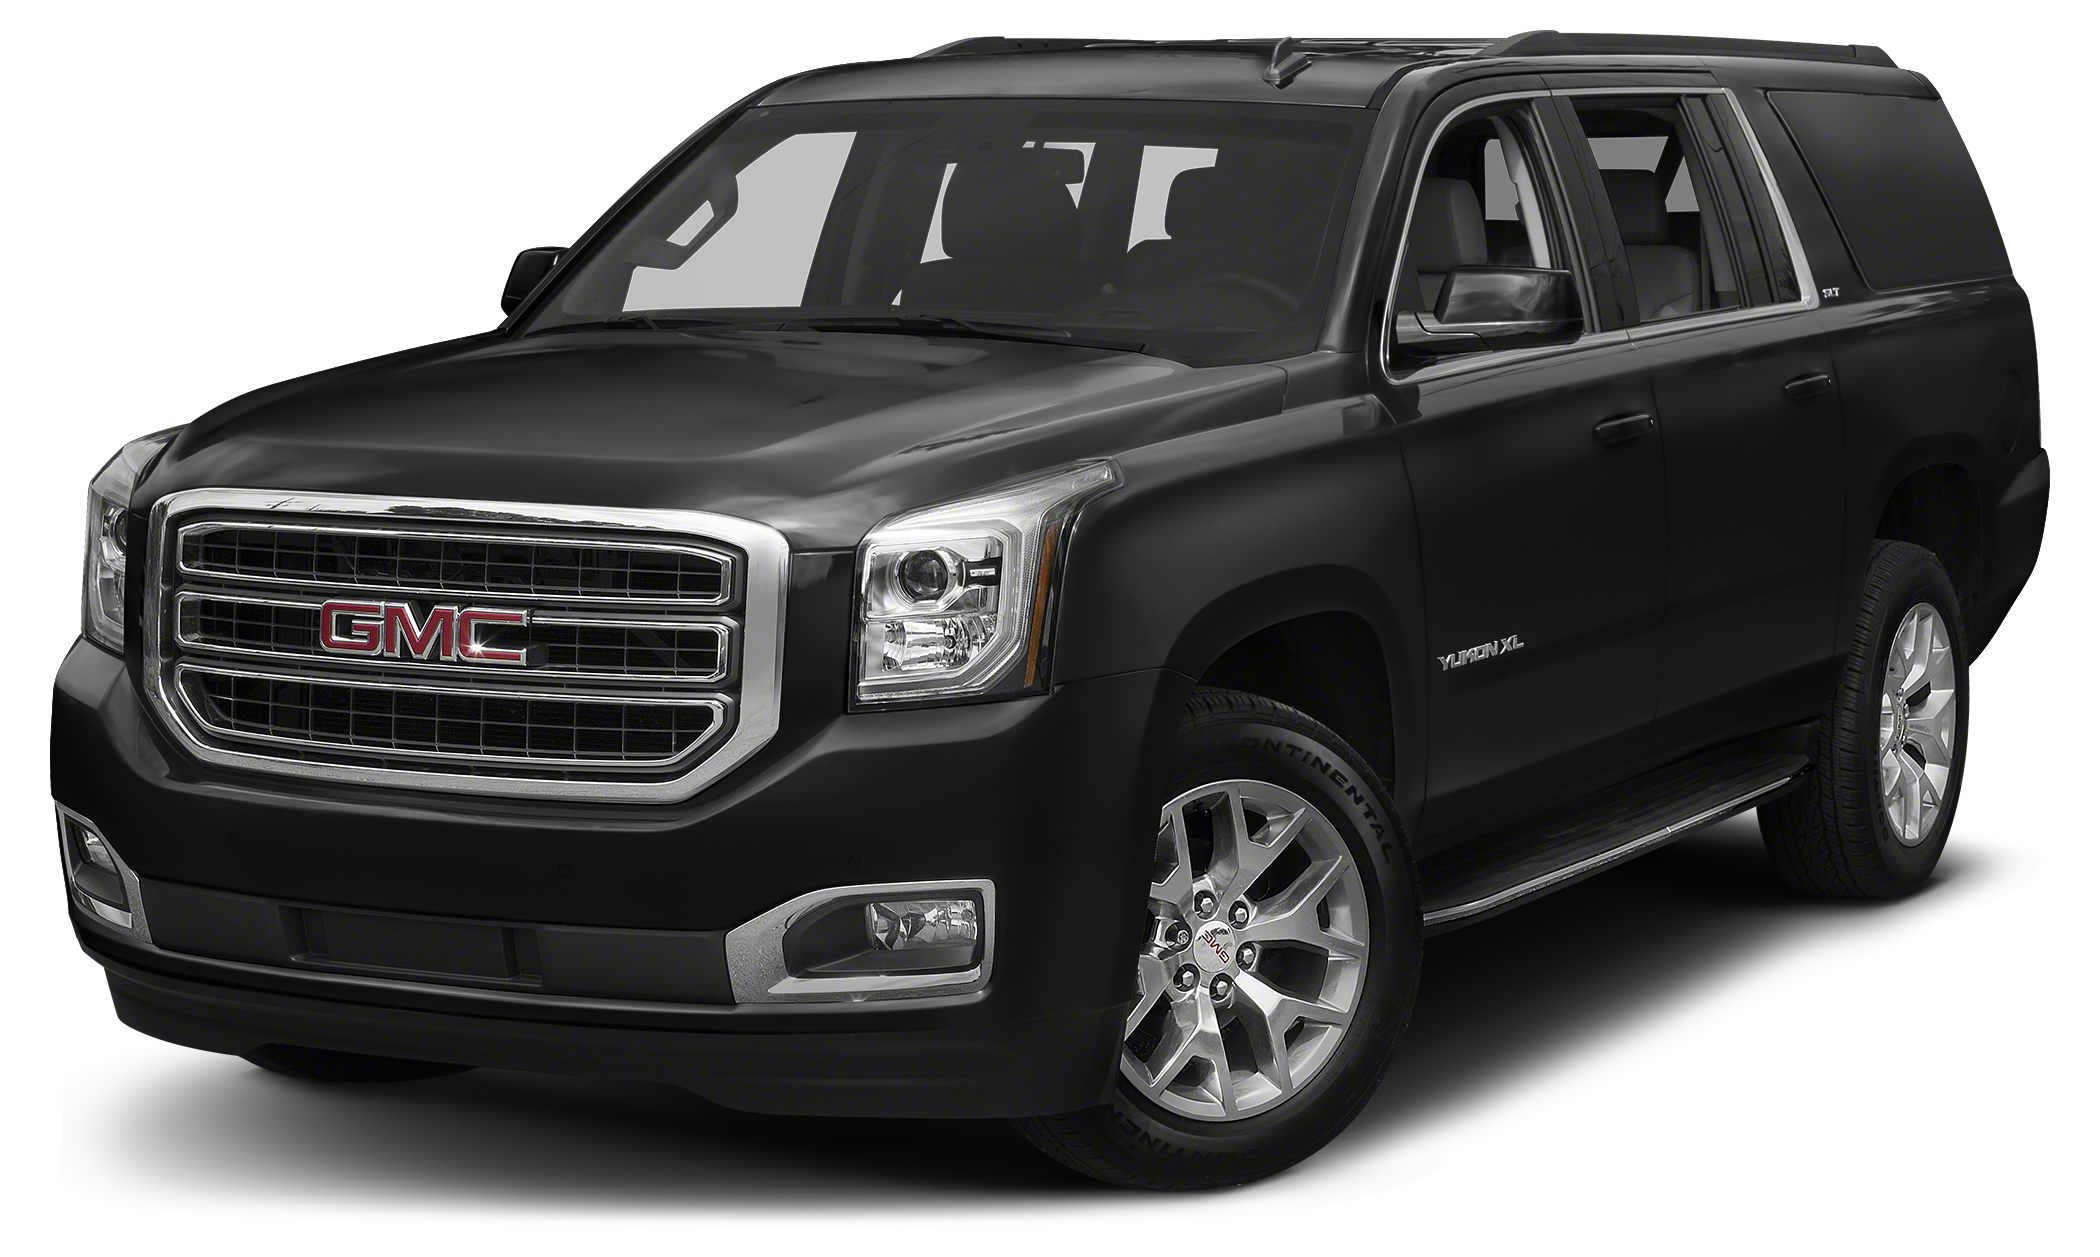 2016 GMC Yukon XL SLT Finance Offers based on MSRP2016 GMC Yukon XL SLT 4x2 finance rates for qua